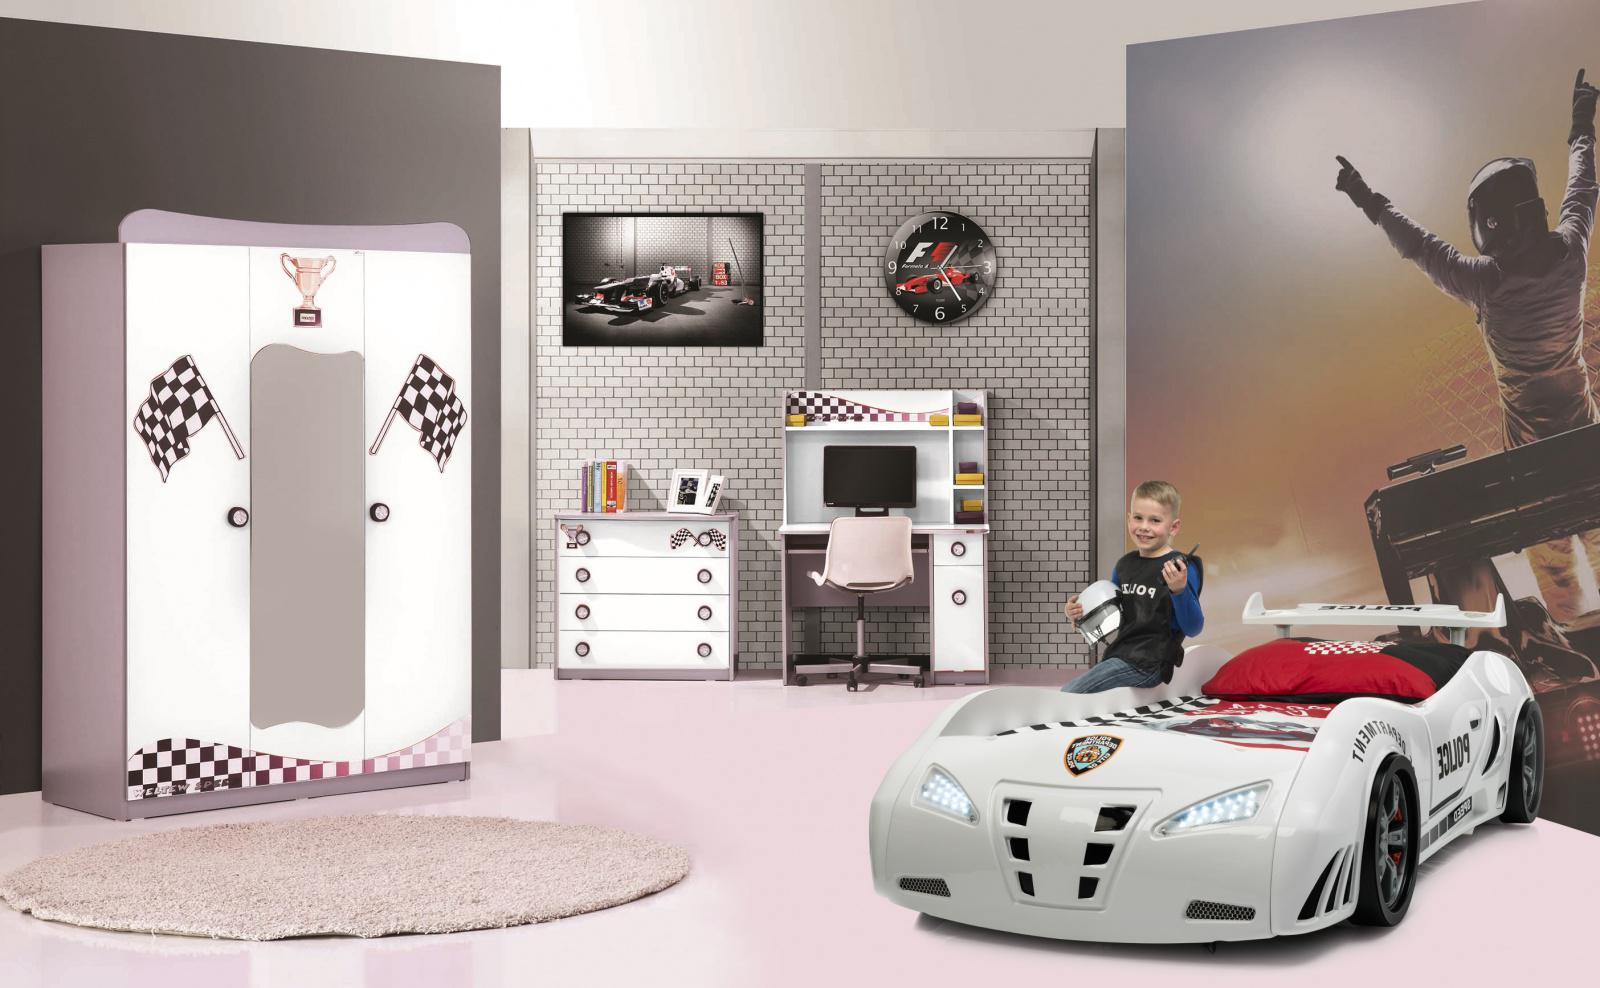 kinderzimmer set autobett police wei 4 tlg kaufen bei m bel lux. Black Bedroom Furniture Sets. Home Design Ideas